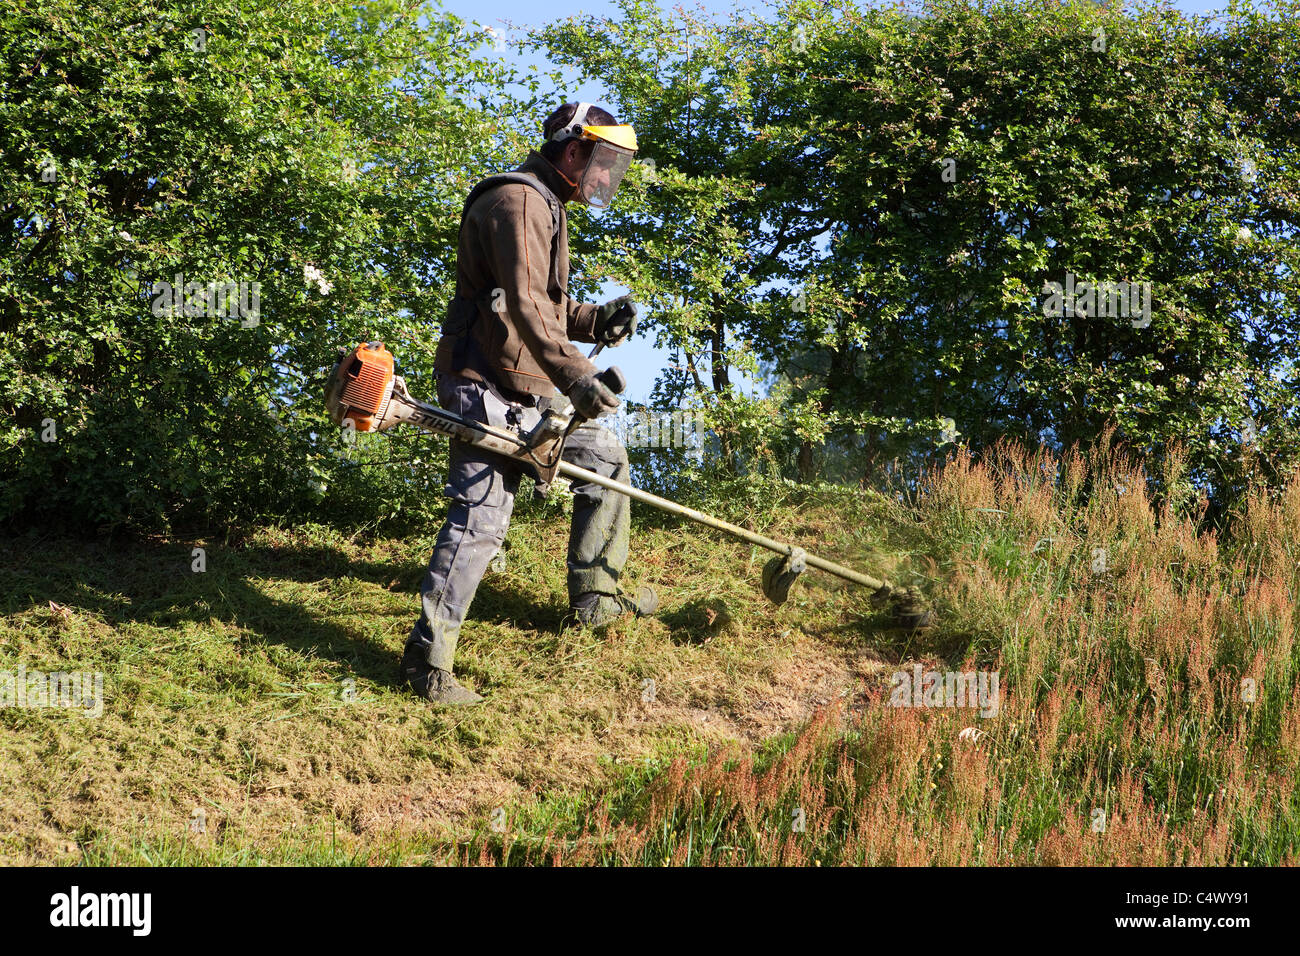 Young man cutting the grass with a string trimmer - Stock Image